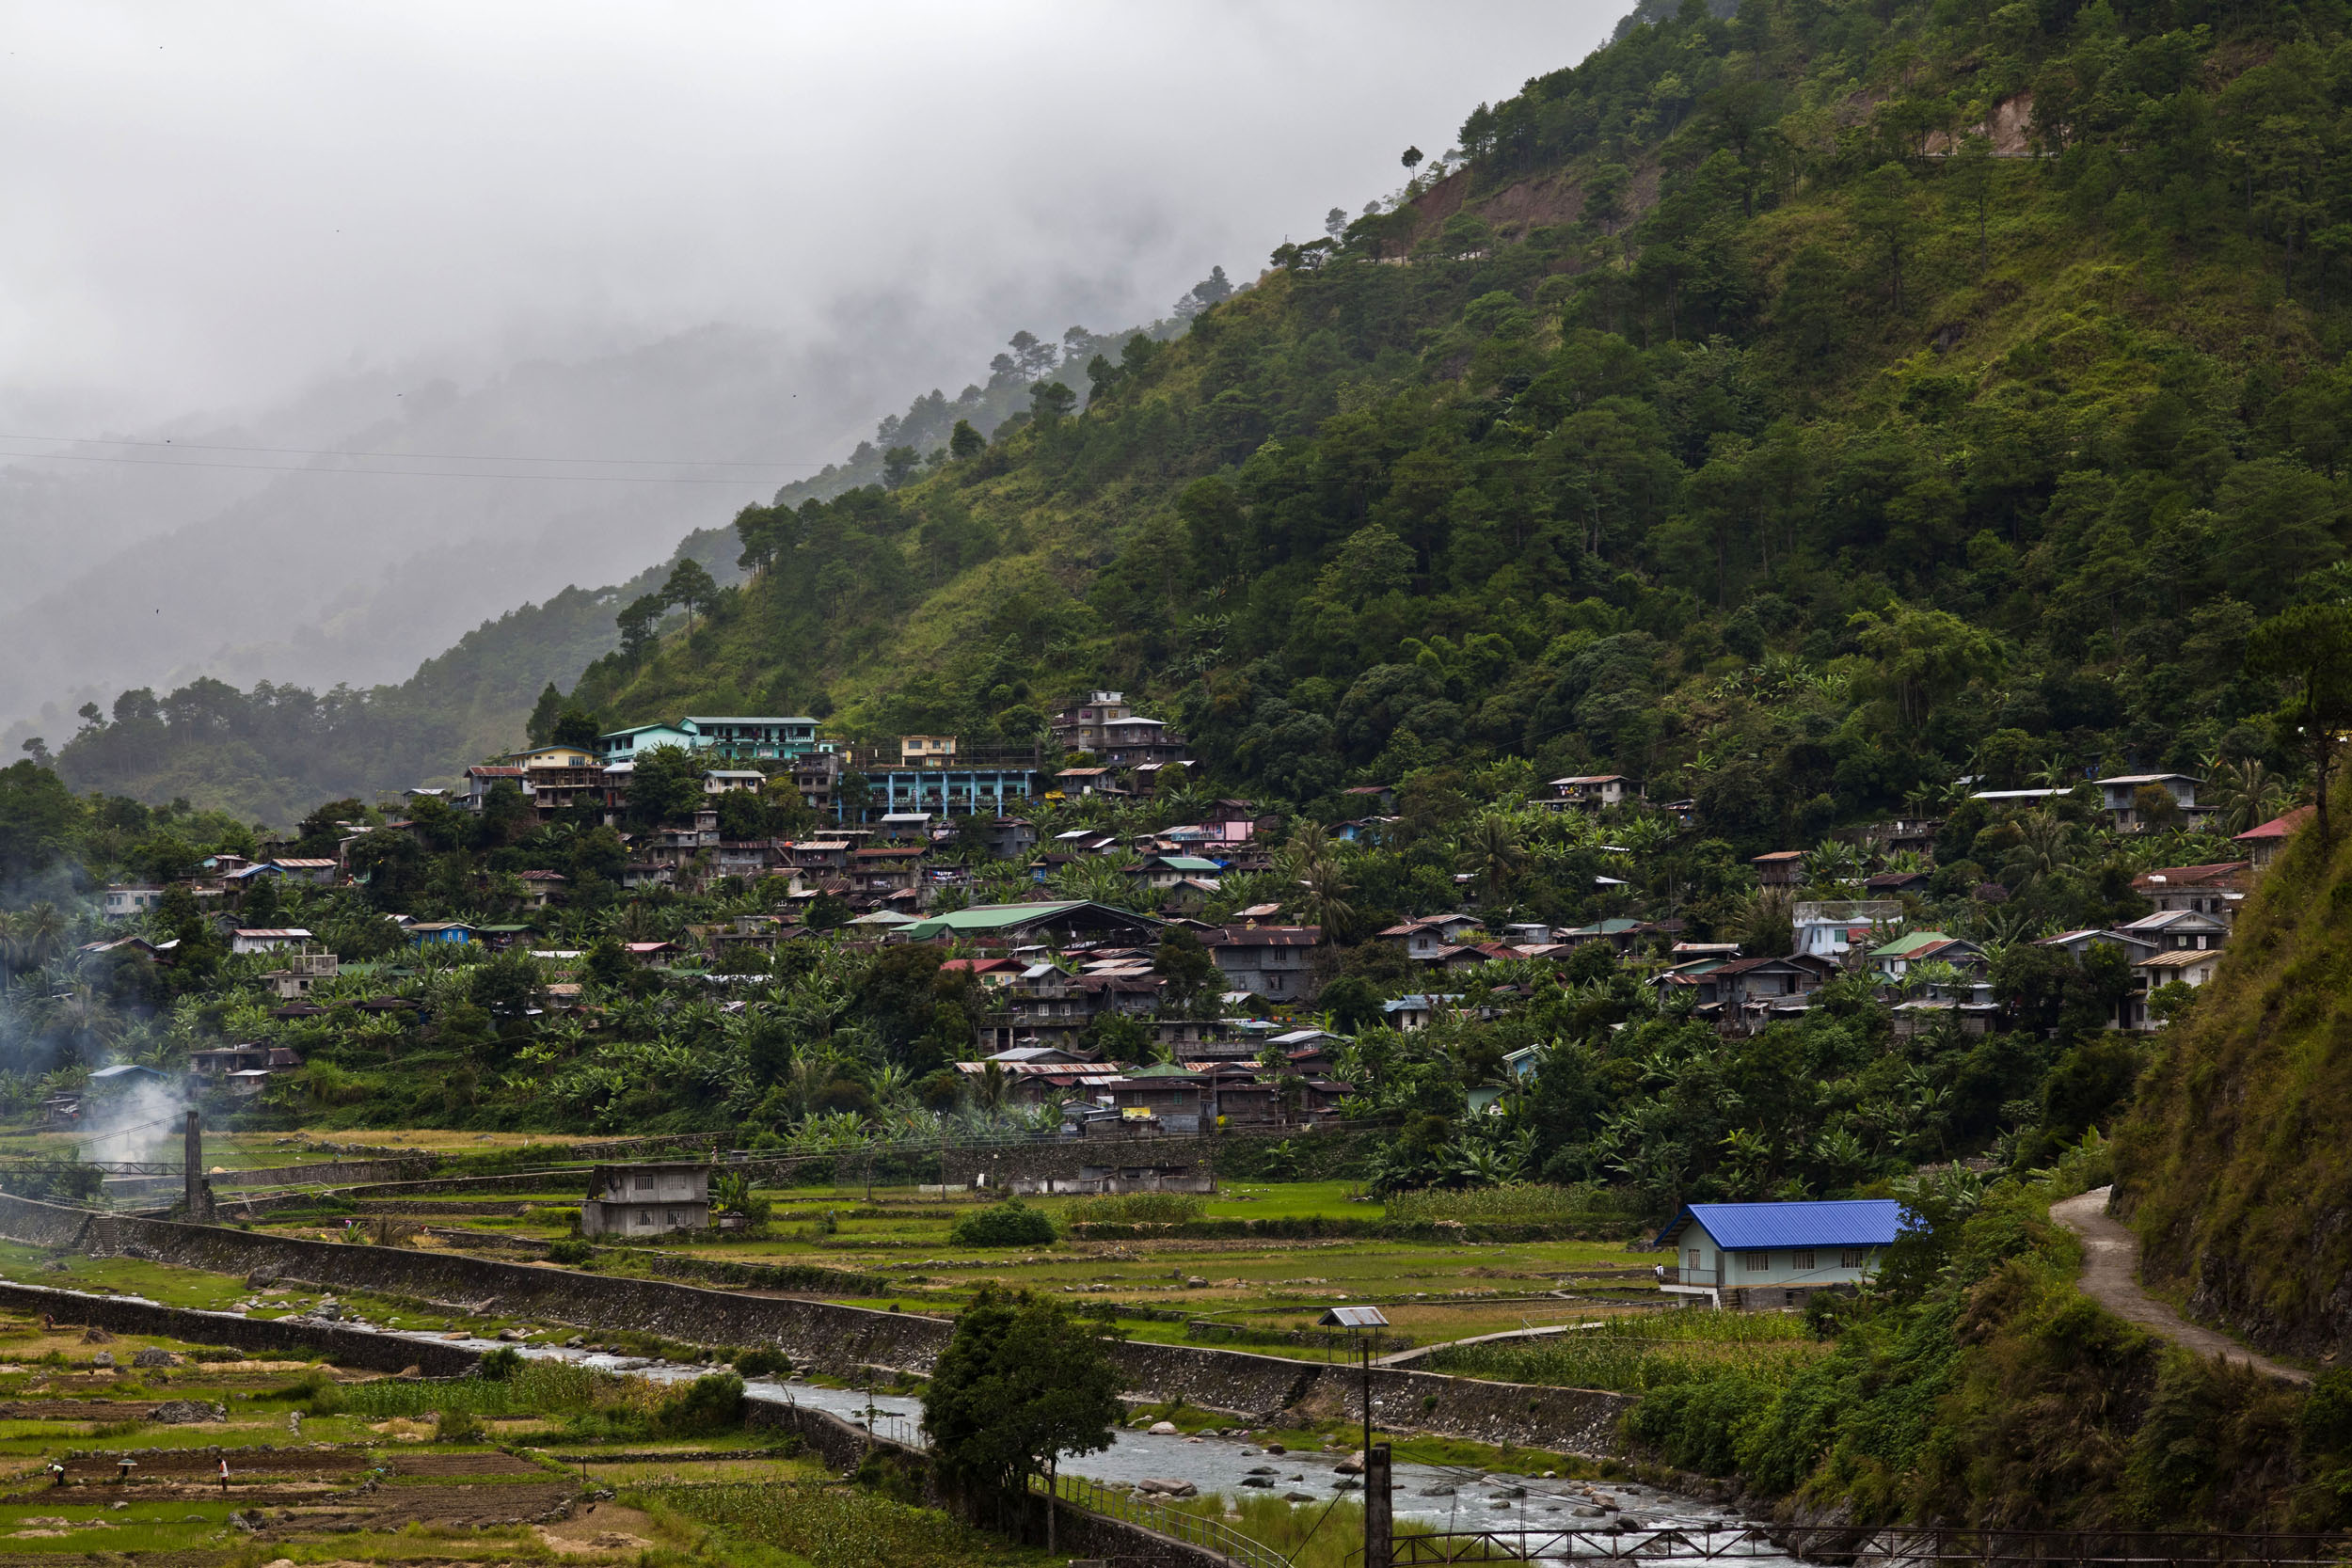 Local towns and villages along the Kabayan Rd Halsema Highway from Baguio to Sagada Aug 2011 12